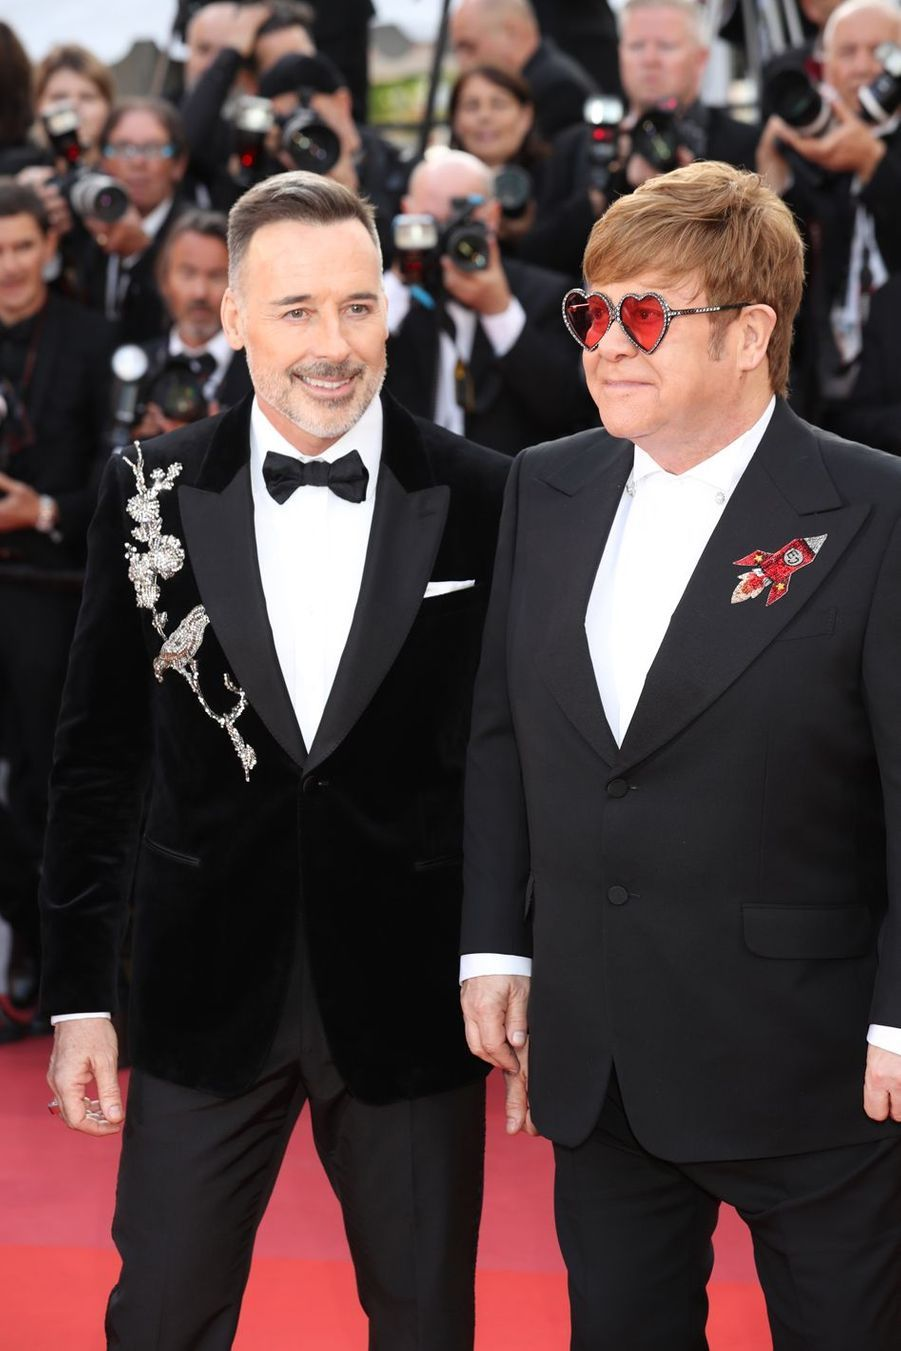 Elton John et David Furnish au Festival de Cannes 2019.